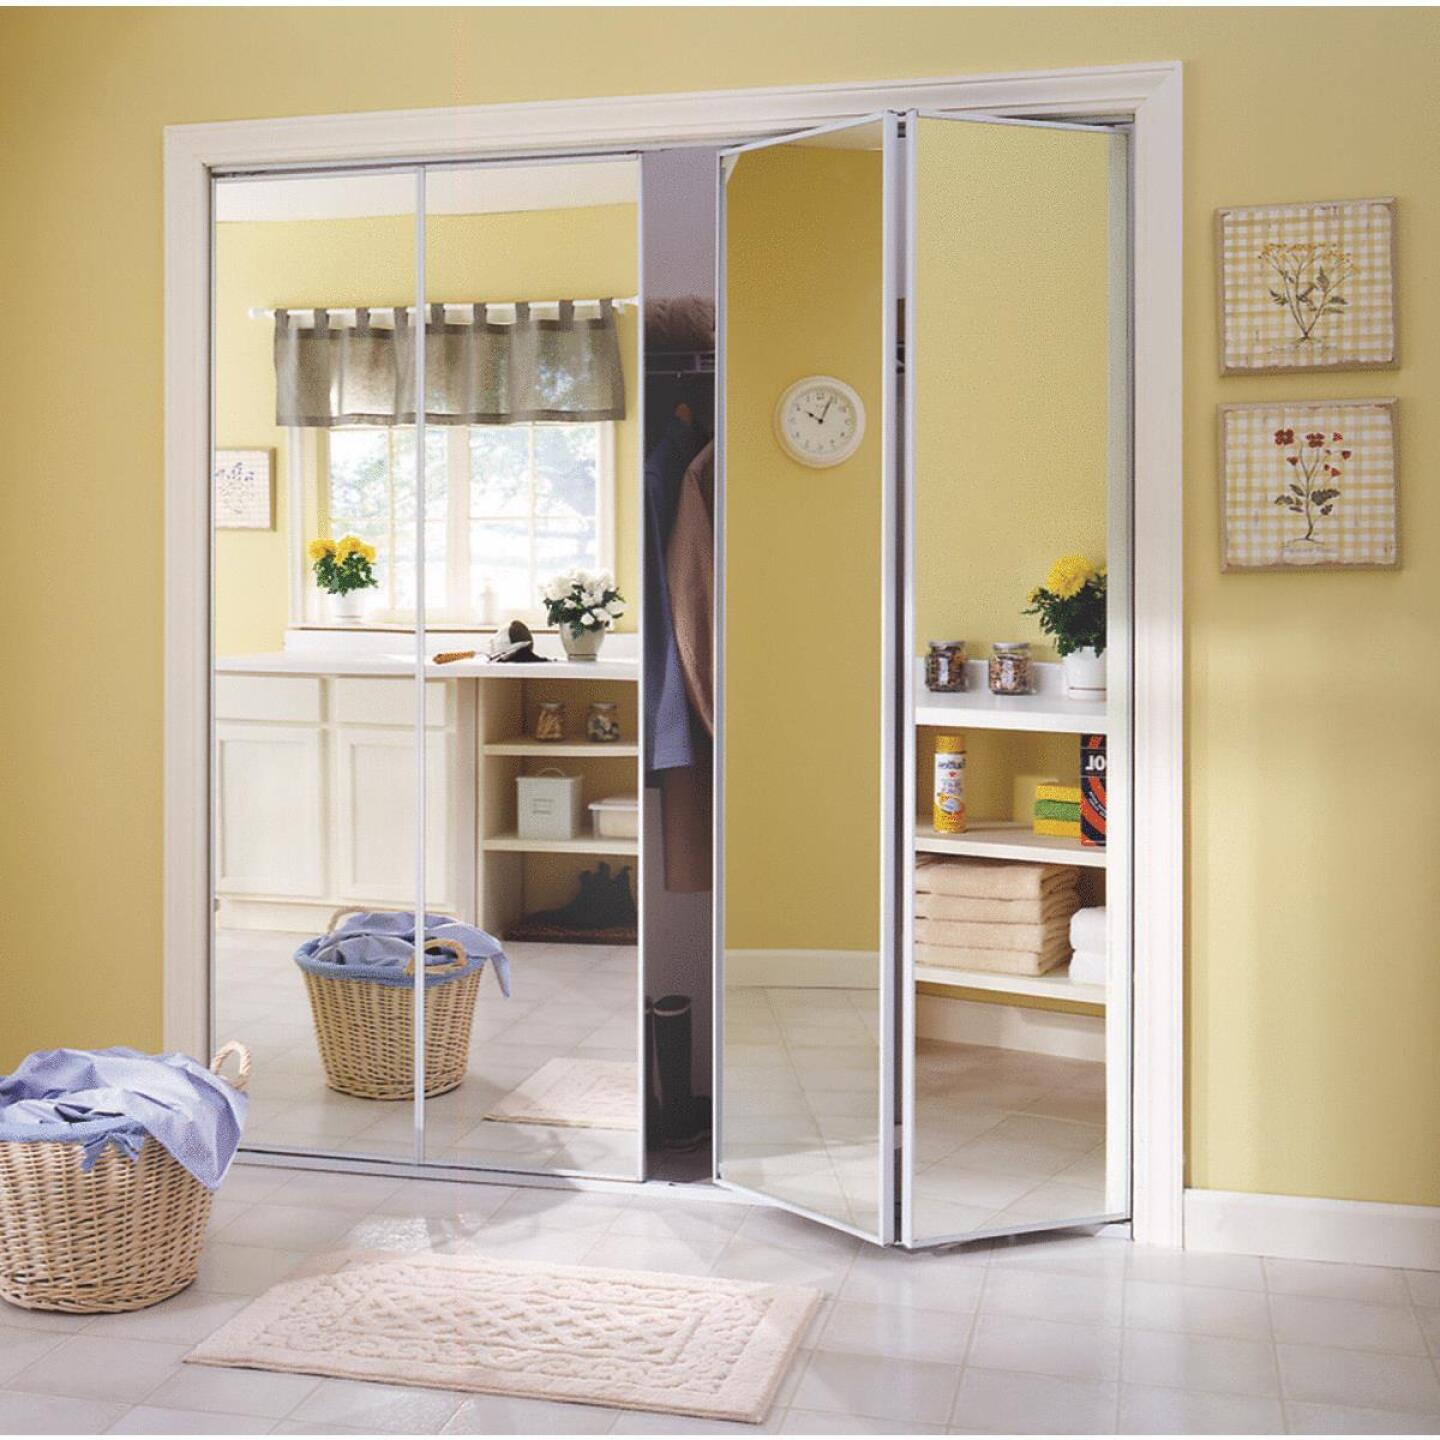 Erias Series 4400 24 In. W. x 80-1/2 In. H. Steel Frame Mirrored White Bifold Door Image 2